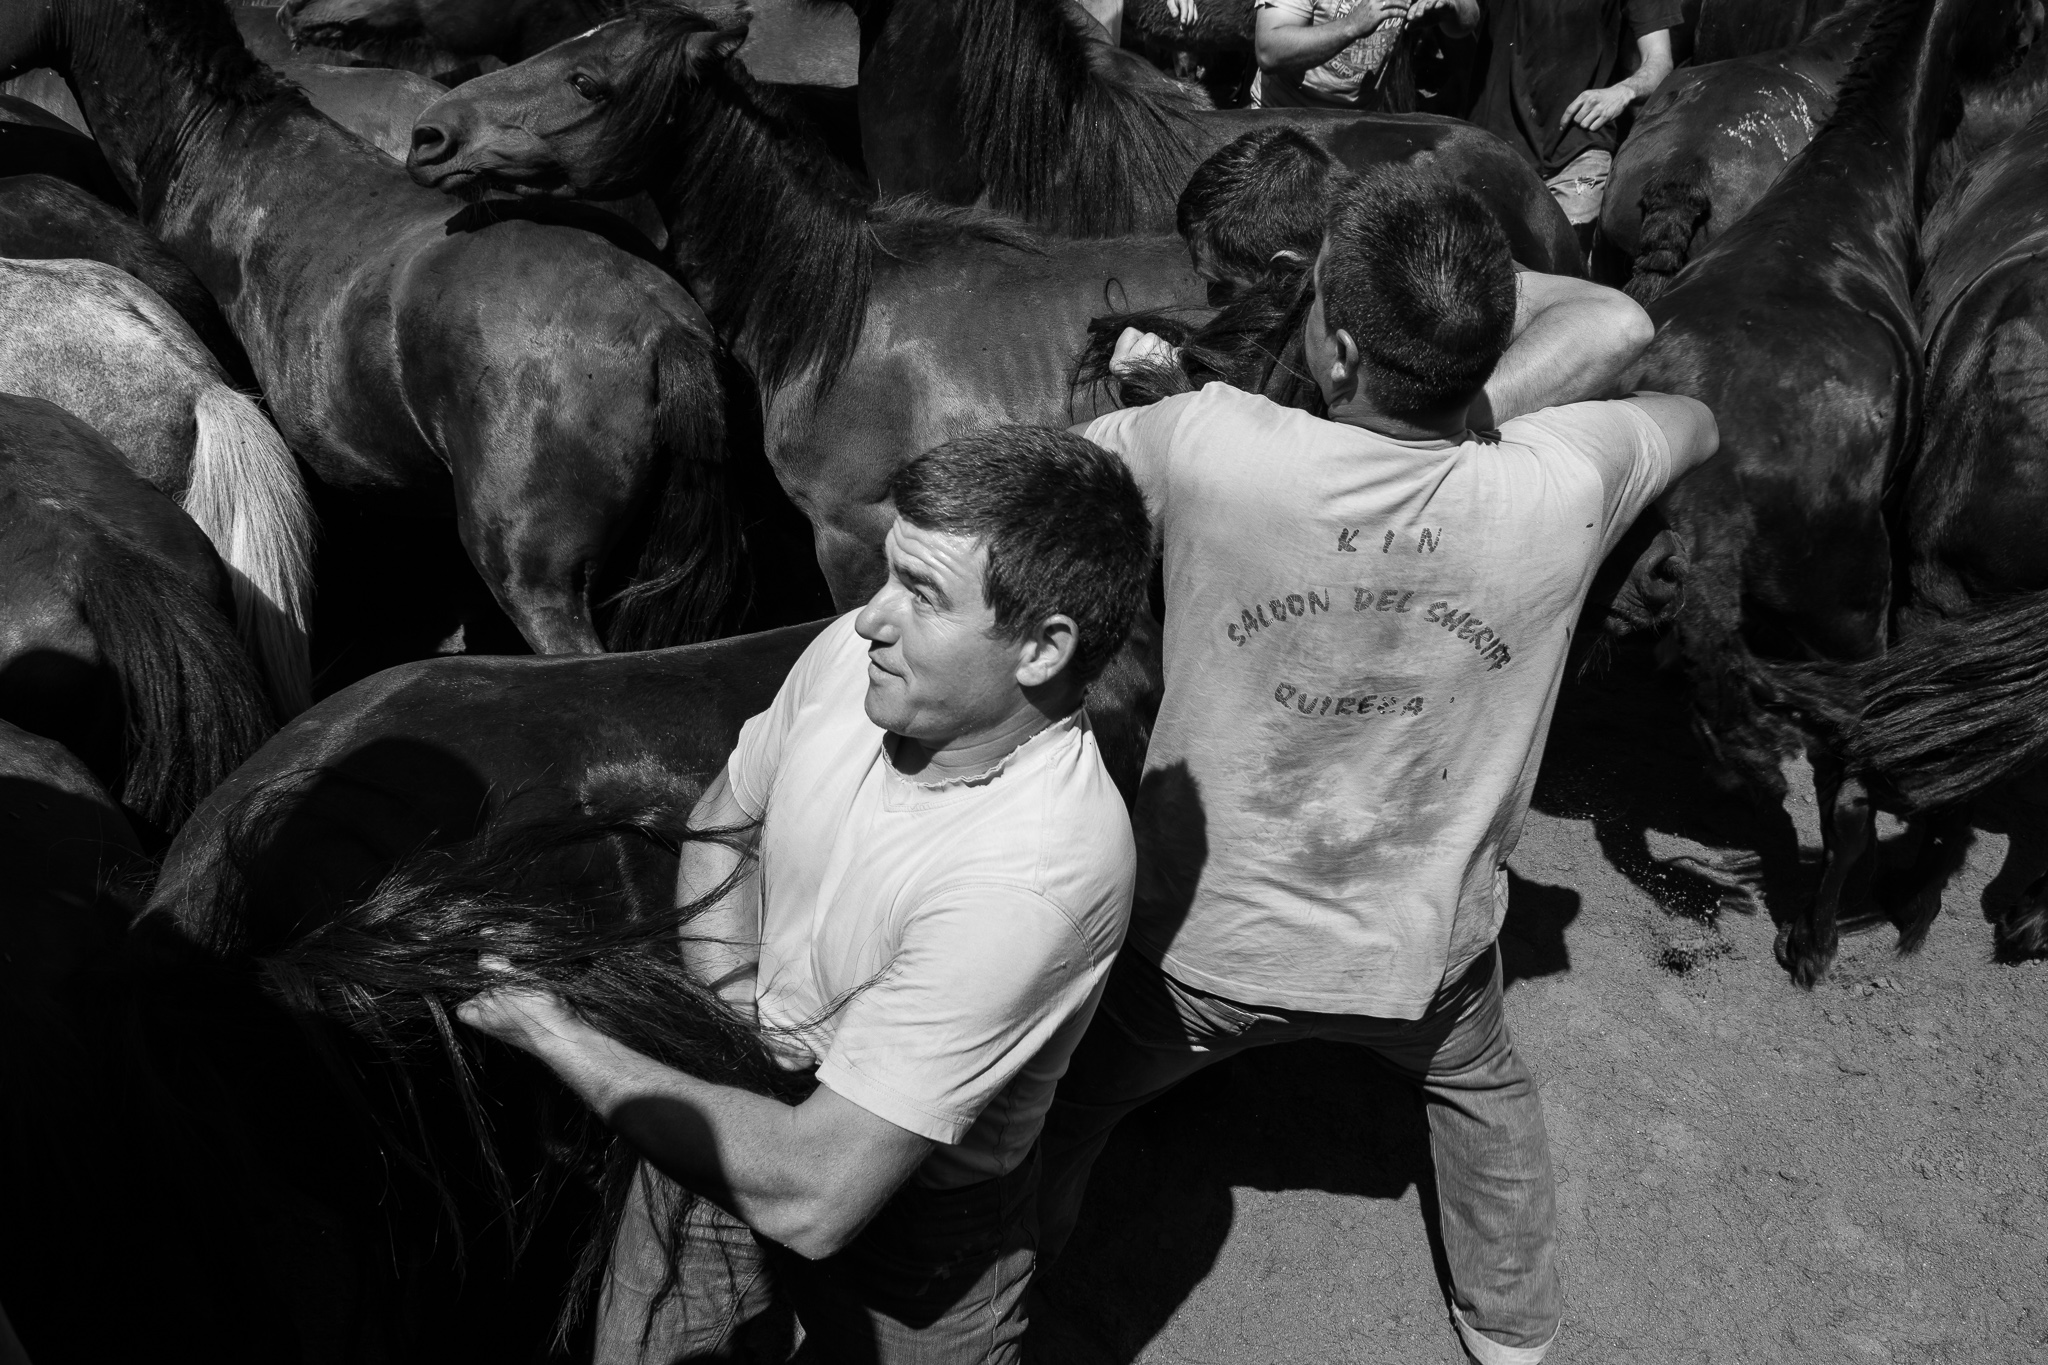 The Rapa das Bestas de Sabucedo, a town belonging to the municipality of La Estrada, Pontevedra, is celebrated every year during the first Friday, Saturday, Sunday and Monday of July. <br> The celebration consists of descending the herds of wild horses from the Galician mountains and later to put them in the 'curro', to cut off their mane and tail, to get rid of parasites and to mark them. <br> The descent takes place thanks to the neighbors of Sabucedo and all the incountable collaborators. However, when the animals are in the curro only the aloitadores face the herds of wild horses and stallions with their bravery and dexterity.